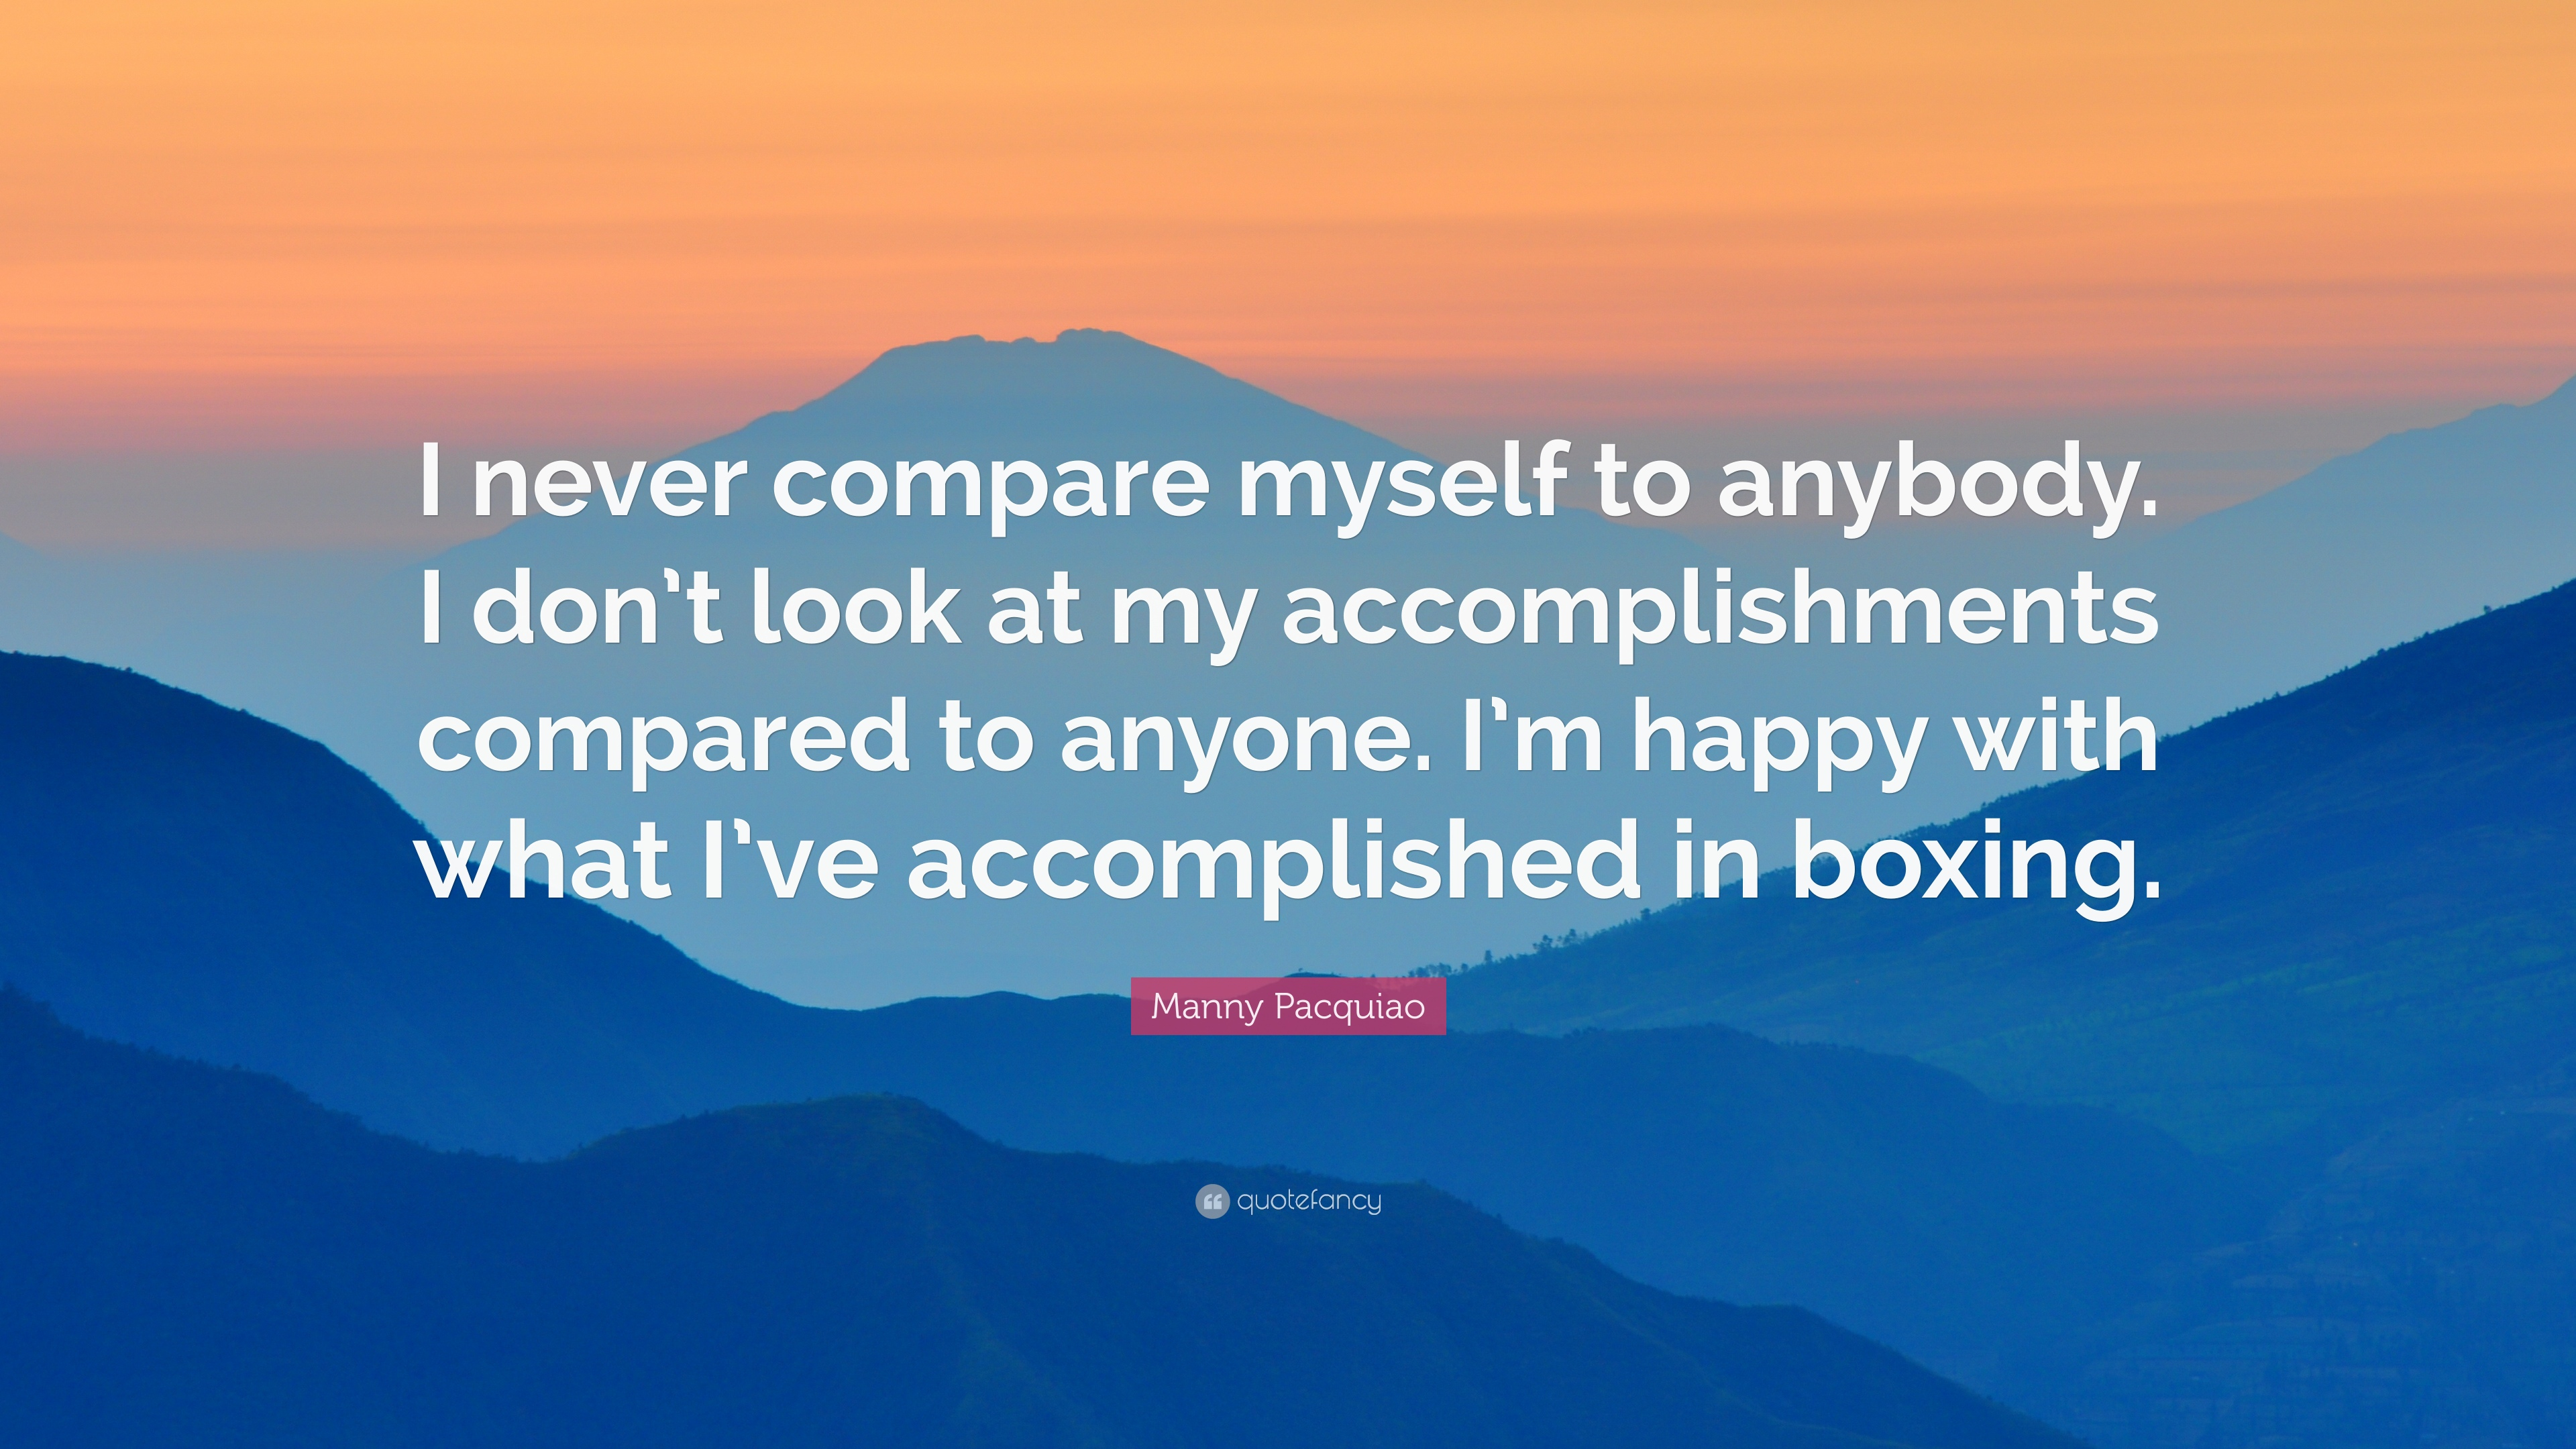 manny pacquiao quote i never compare myself to anybody i don t manny pacquiao quote i never compare myself to anybody i don t